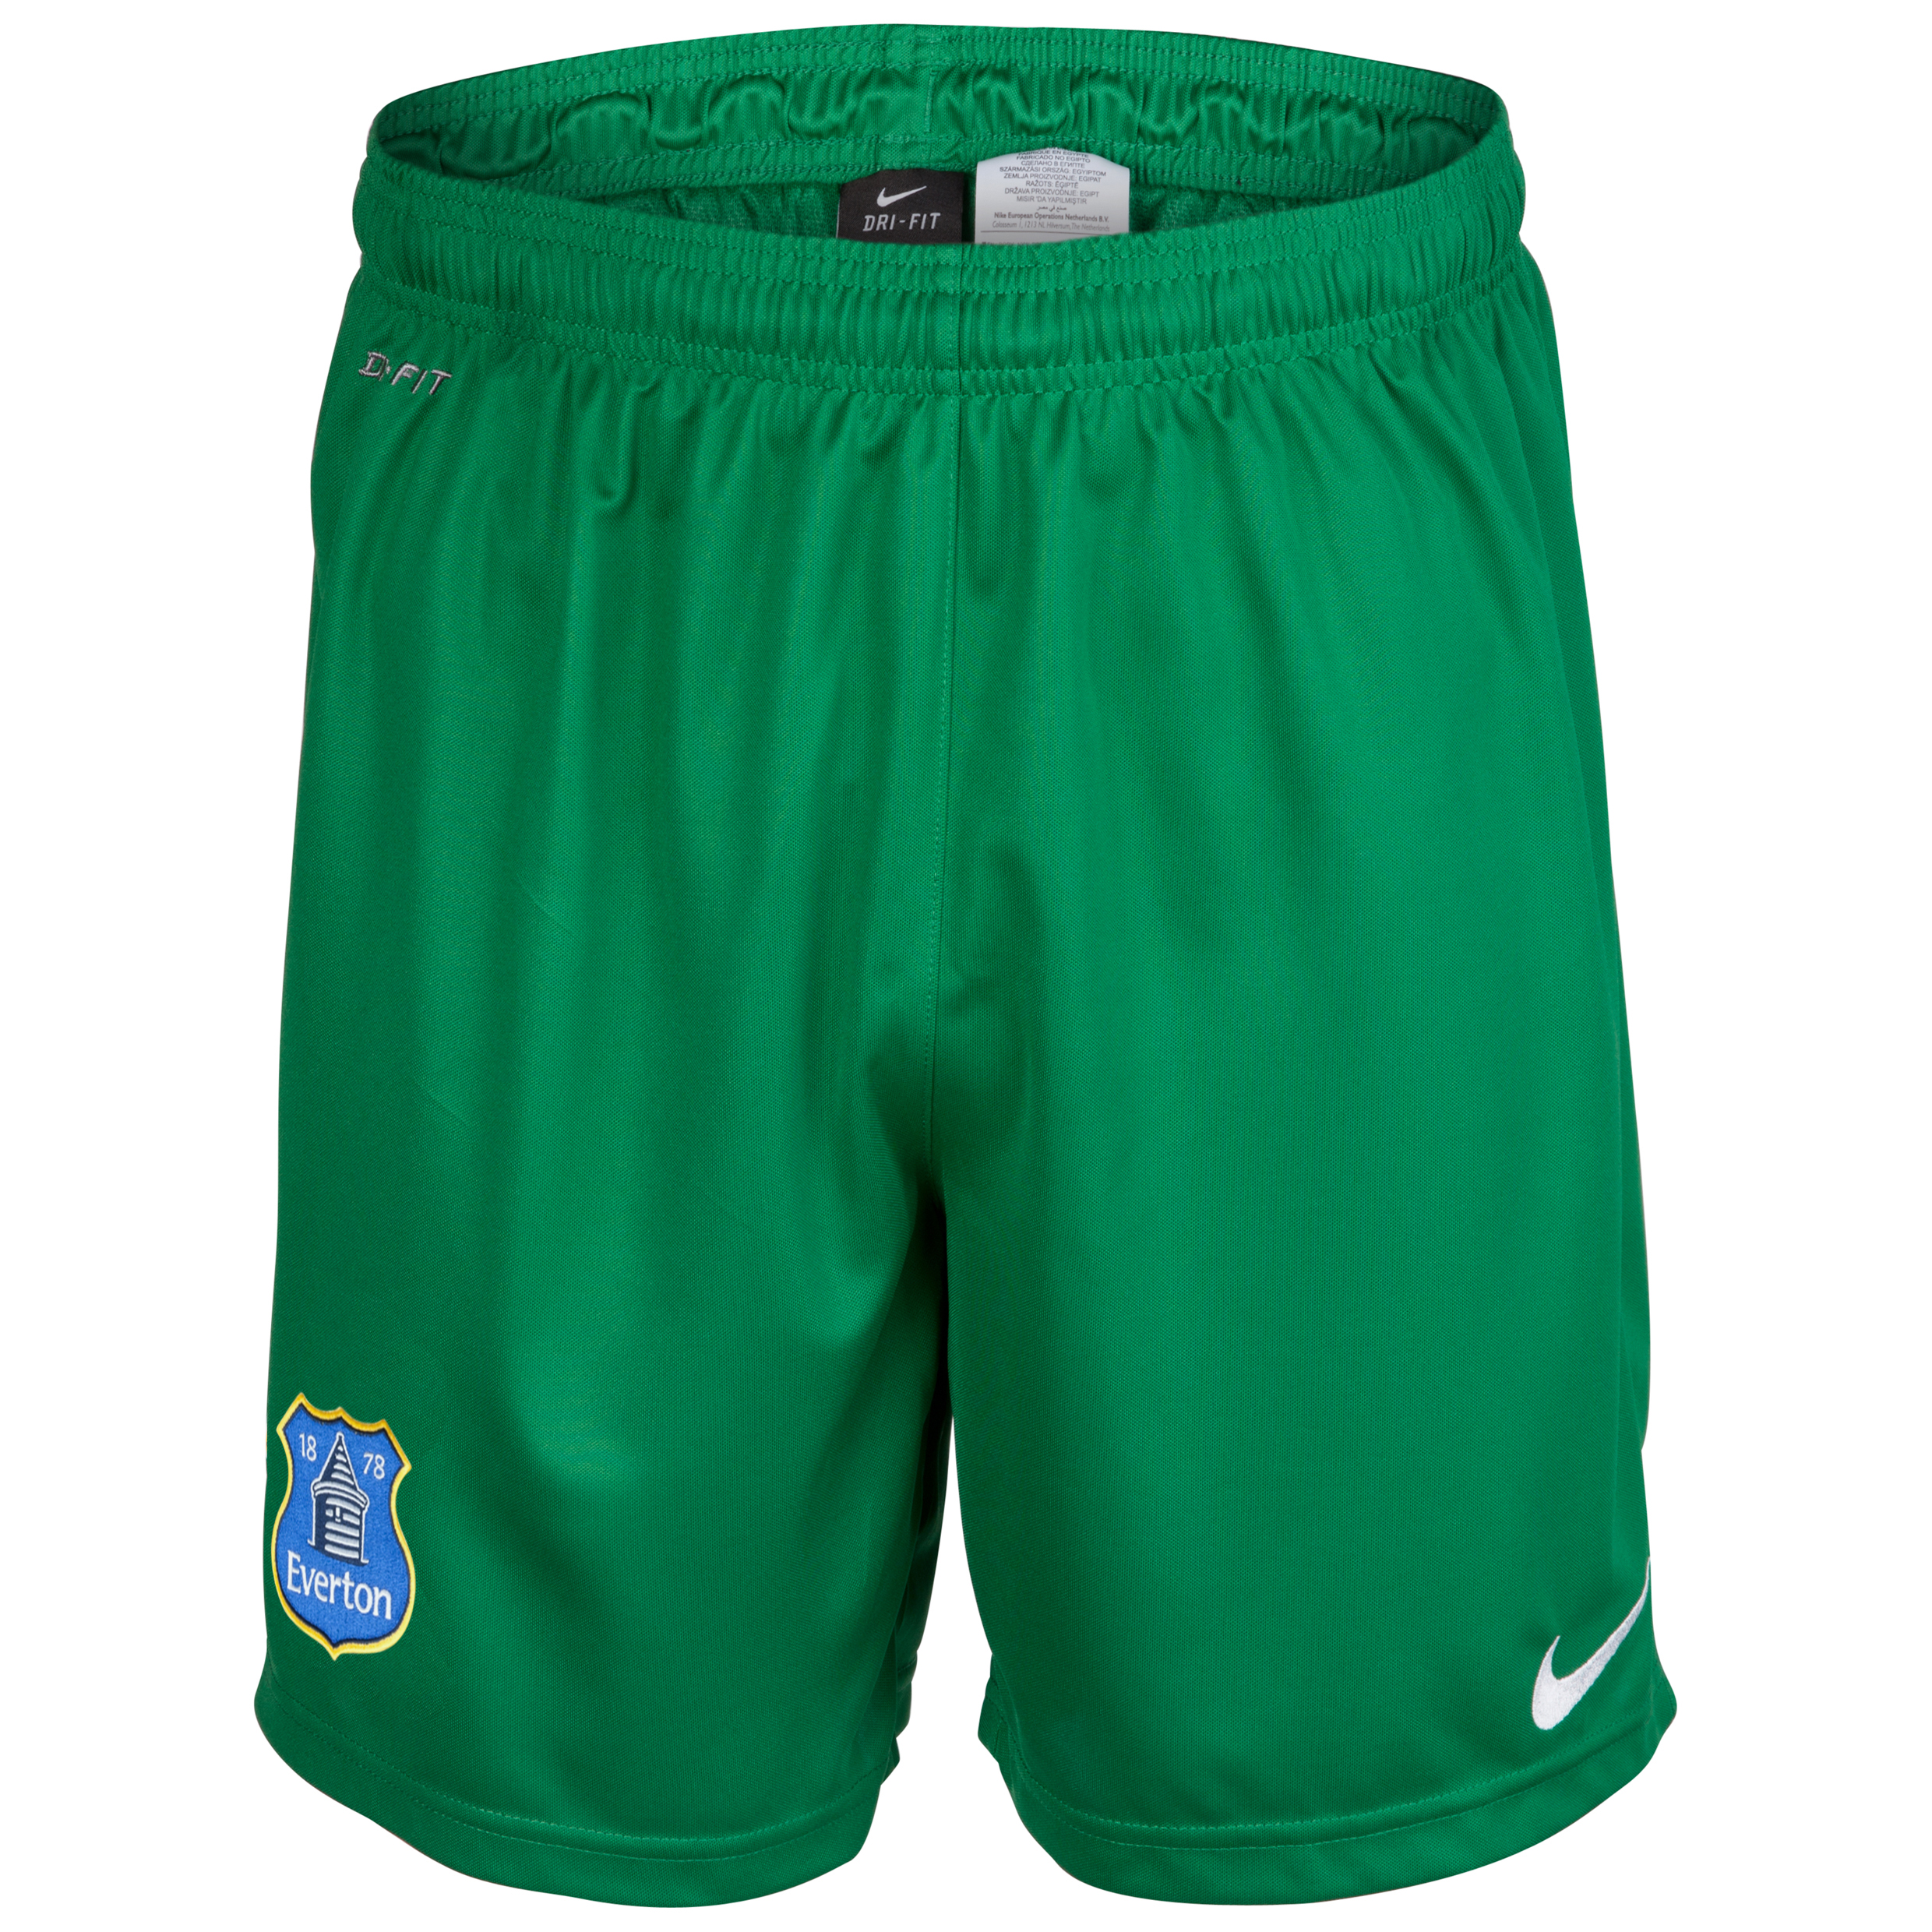 Everton Away Goalkeeper Short 2013/14 - Junior